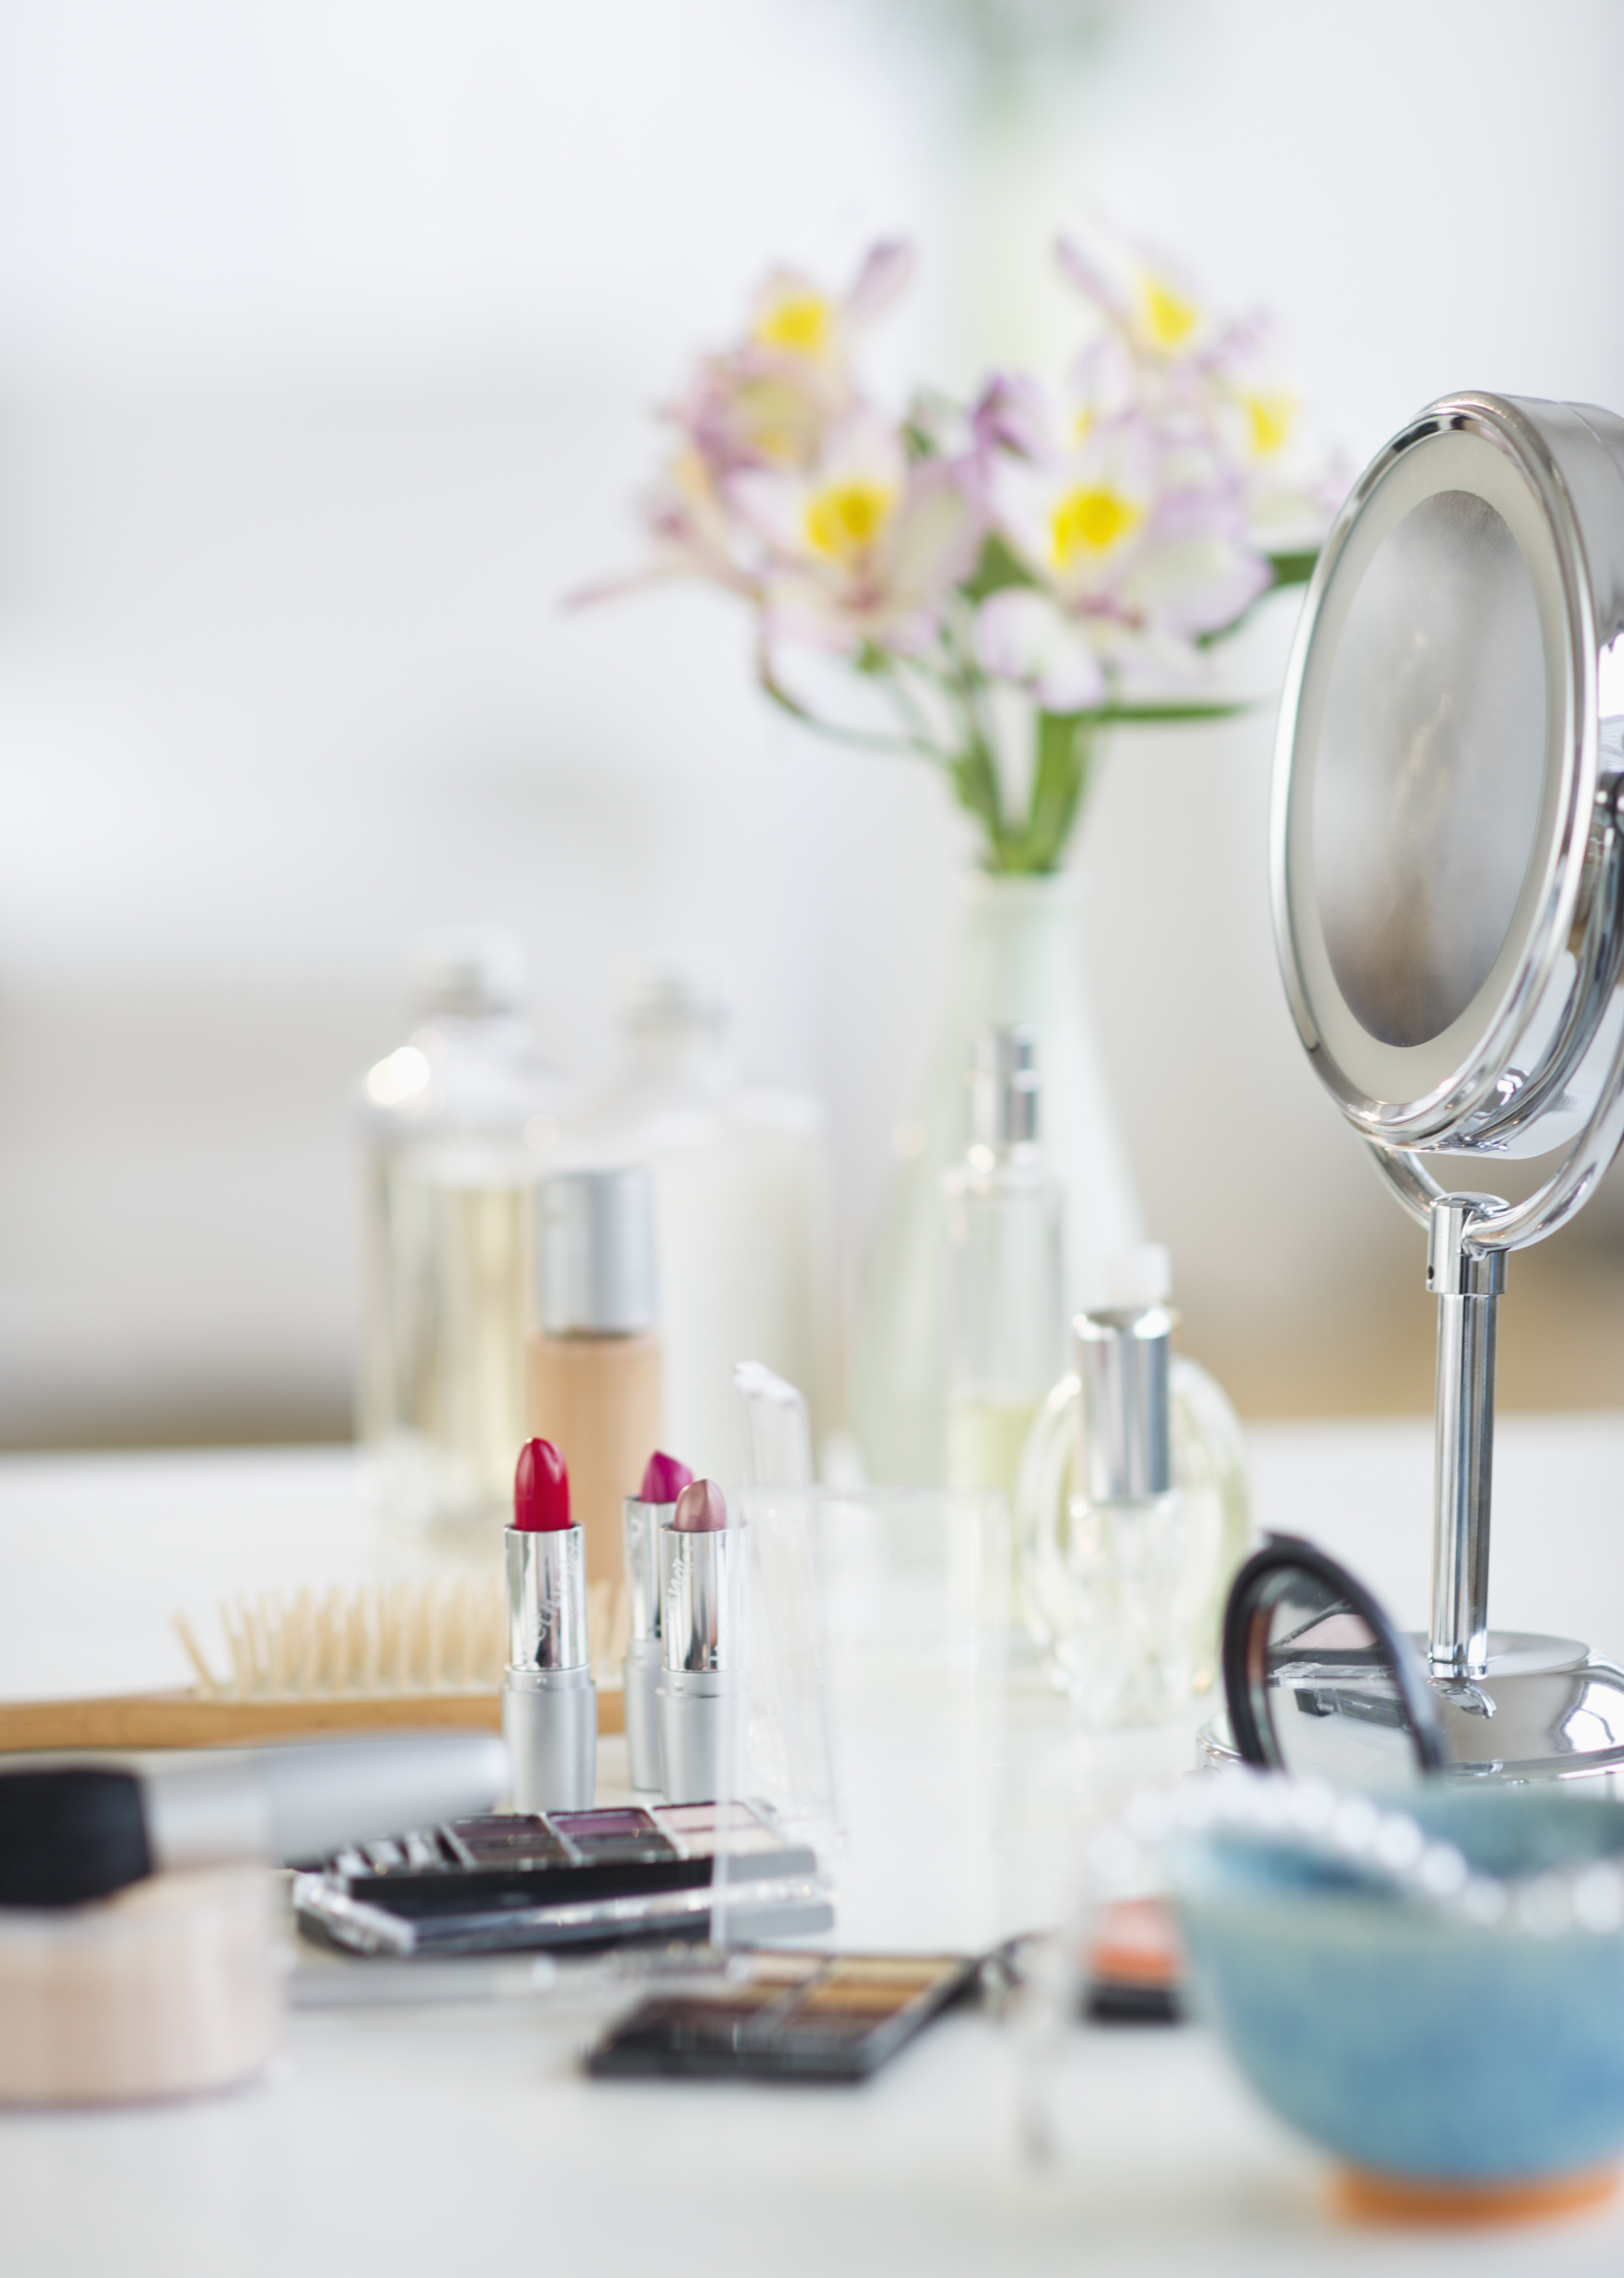 reuse beauty products